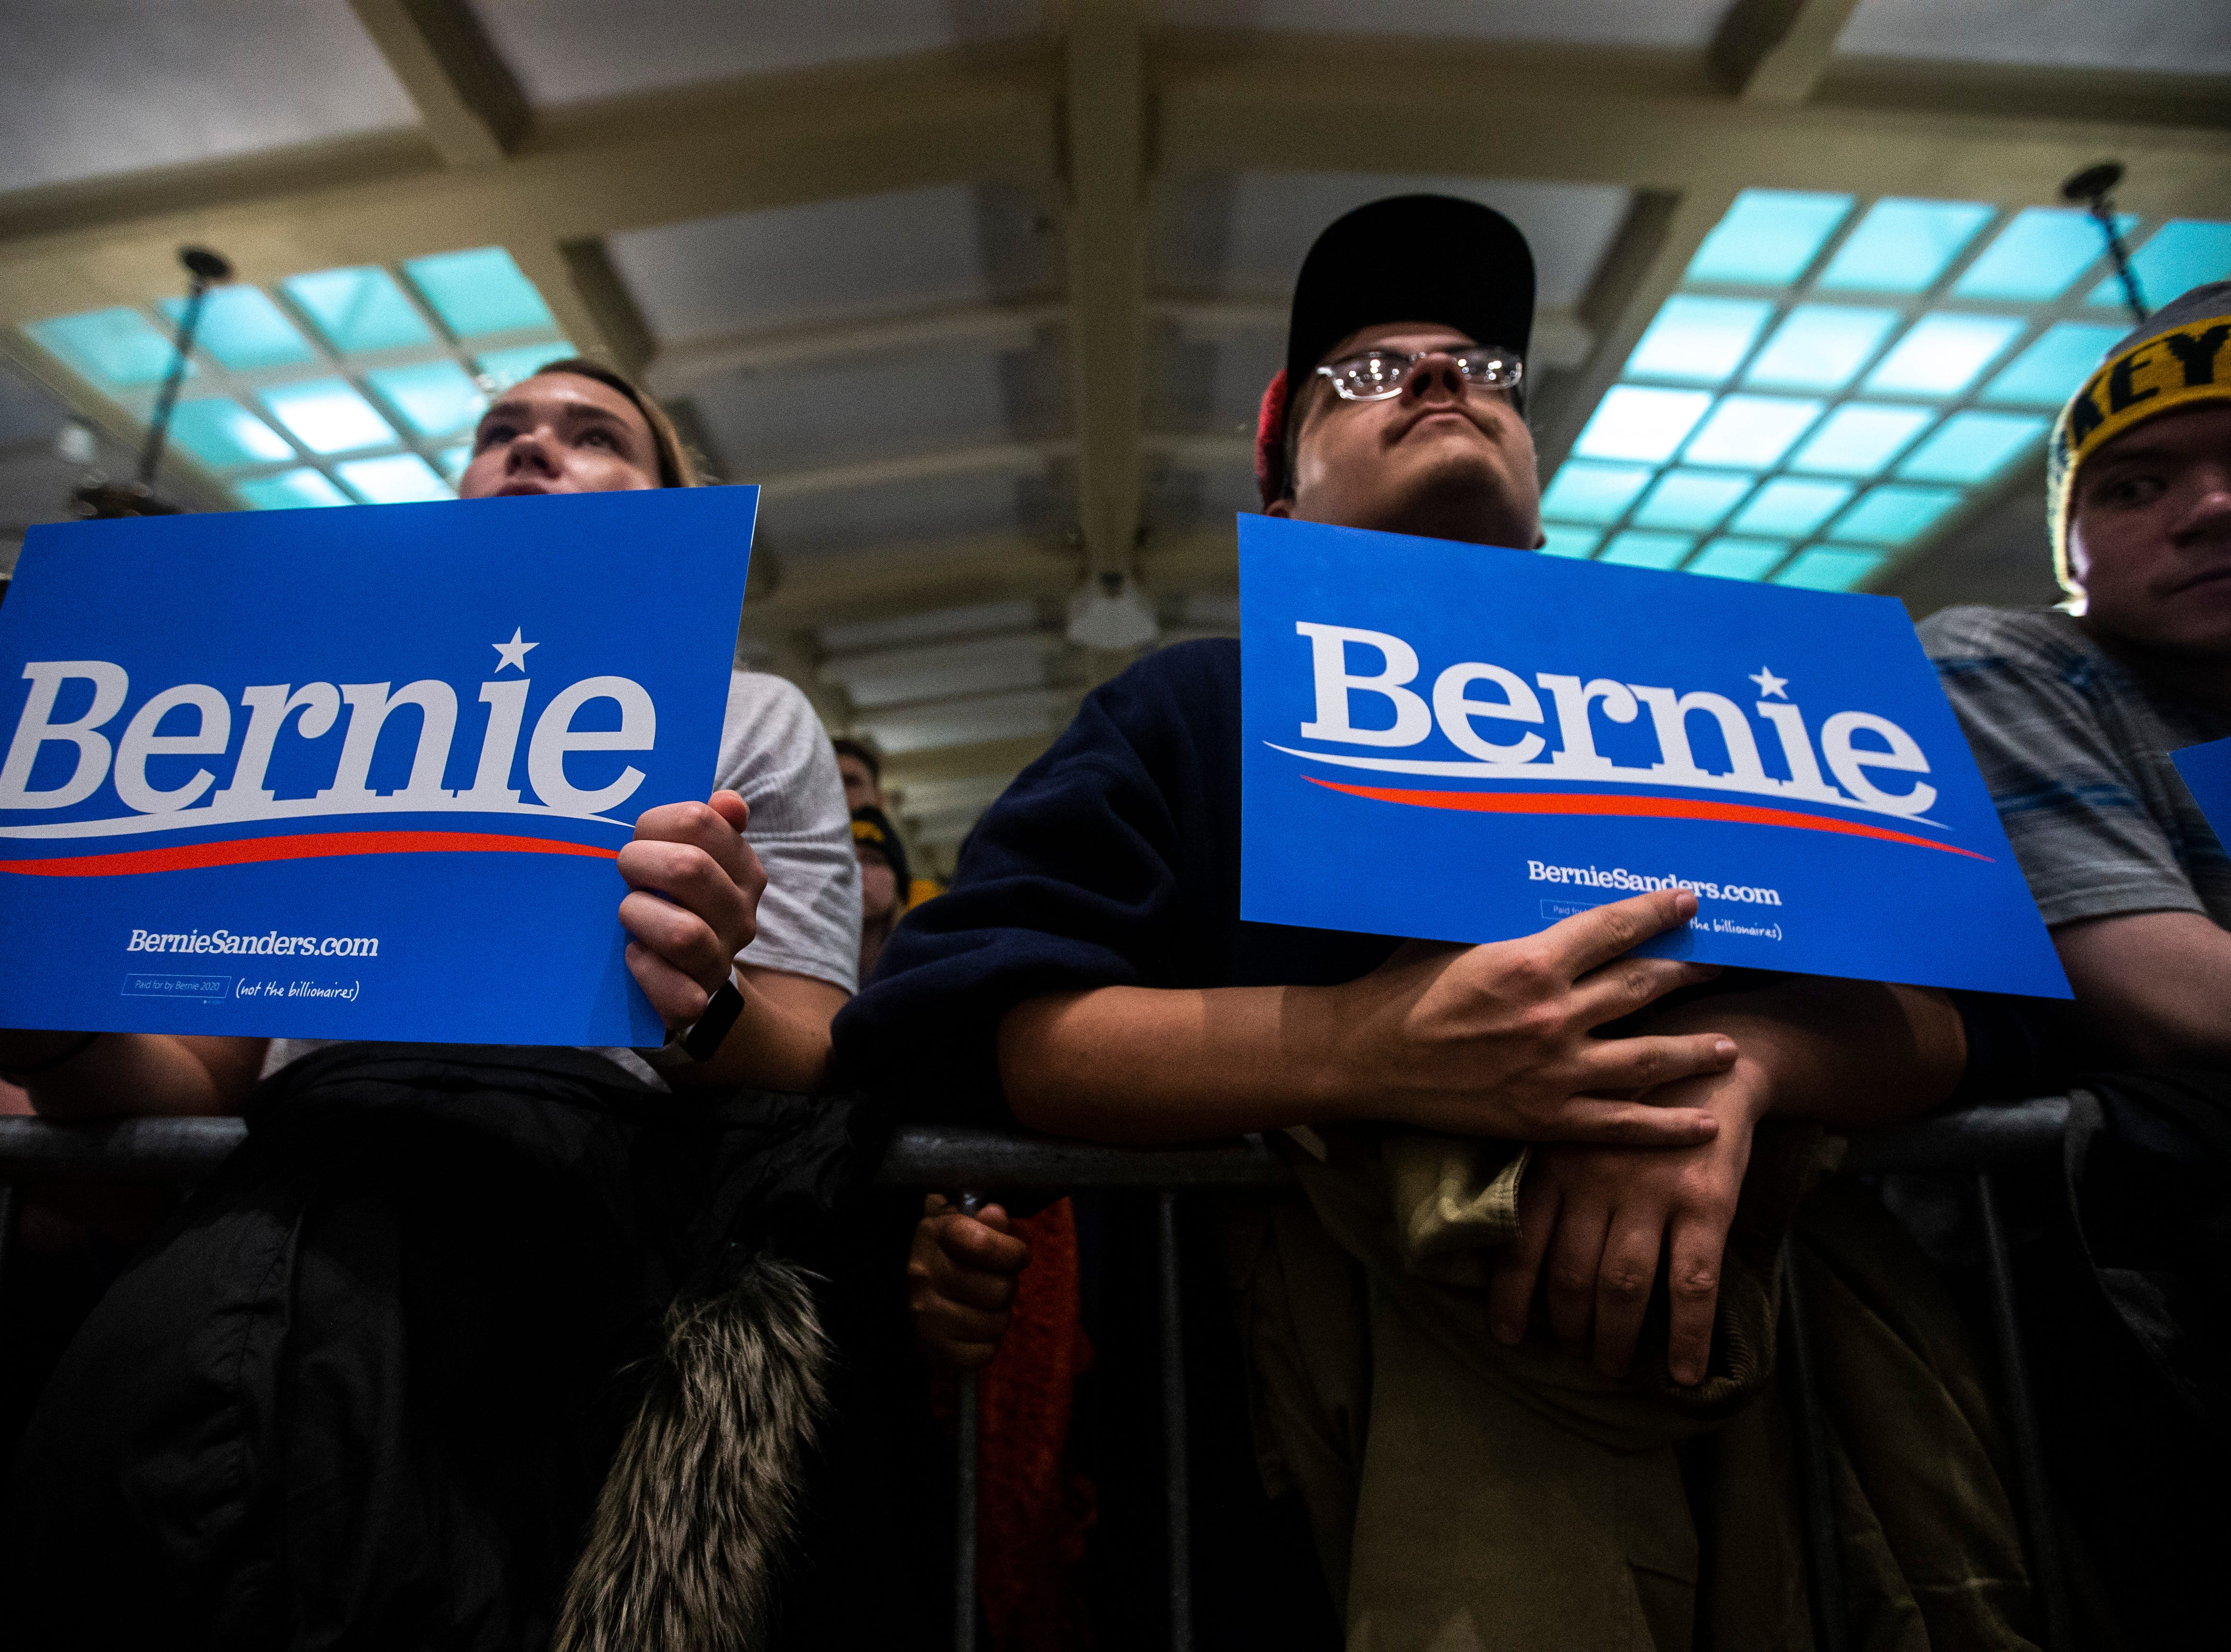 Supporters hold signs while listing to U.S. Sen. Bernie Sanders, I-VT, speak at an event during his first trip to the state ahead of the caucus, Friday, March 8, 2019, at the Iowa Memorial Union on the University of Iowa campus in Iowa City, Iowa.